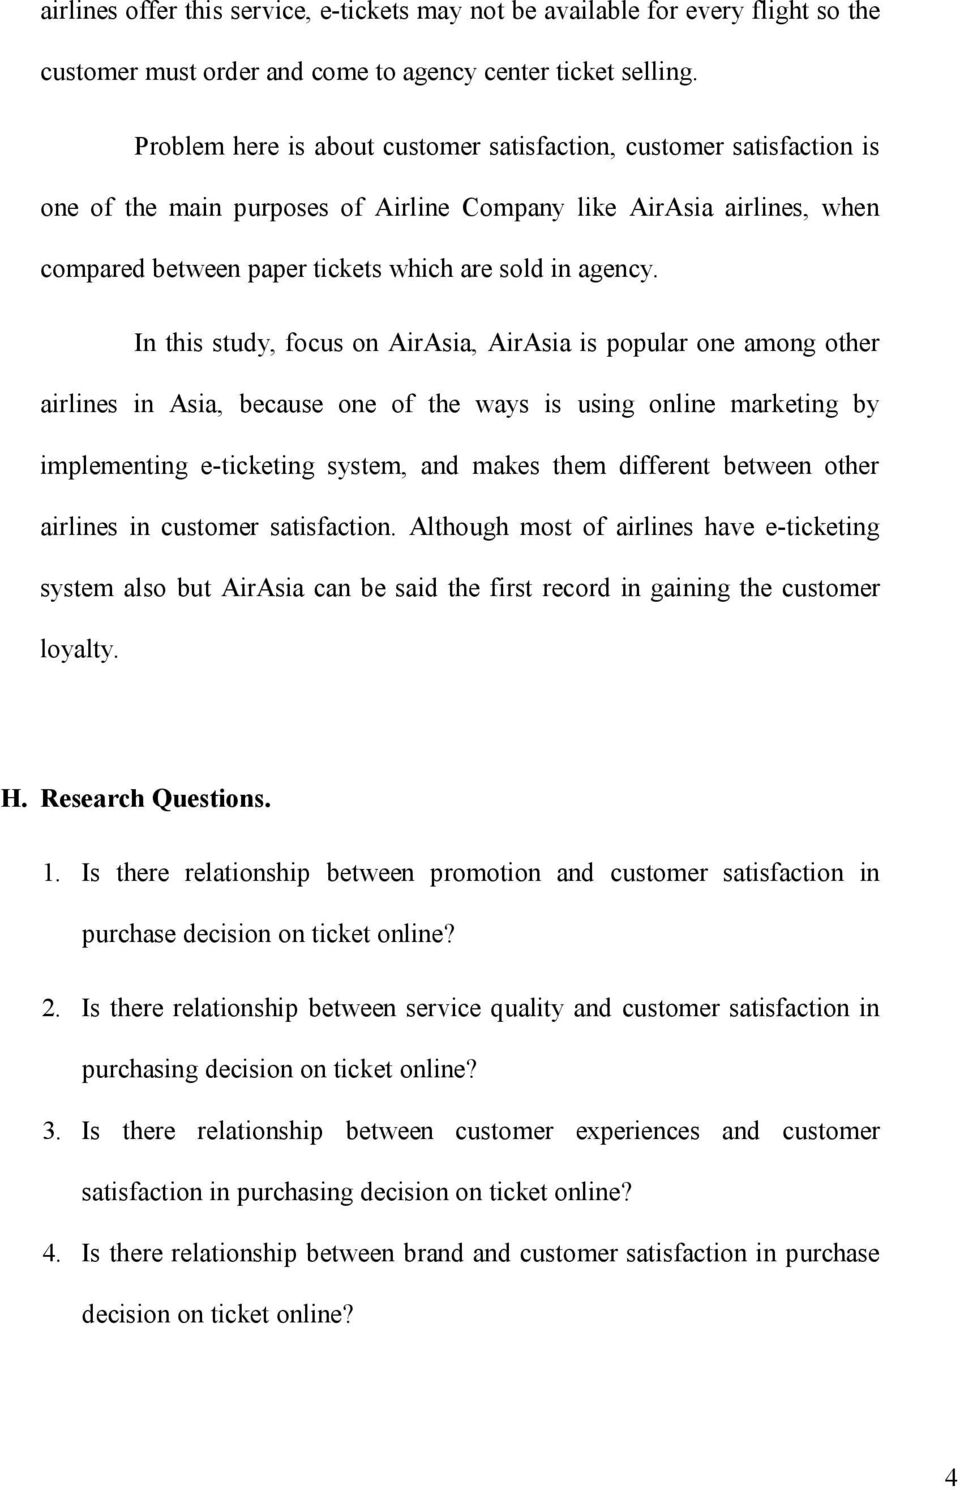 In this study, focus on AirAsia, AirAsia is popular one among other airlines in Asia, because one of the ways is using online marketing by implementing e-ticketing system, and makes them different